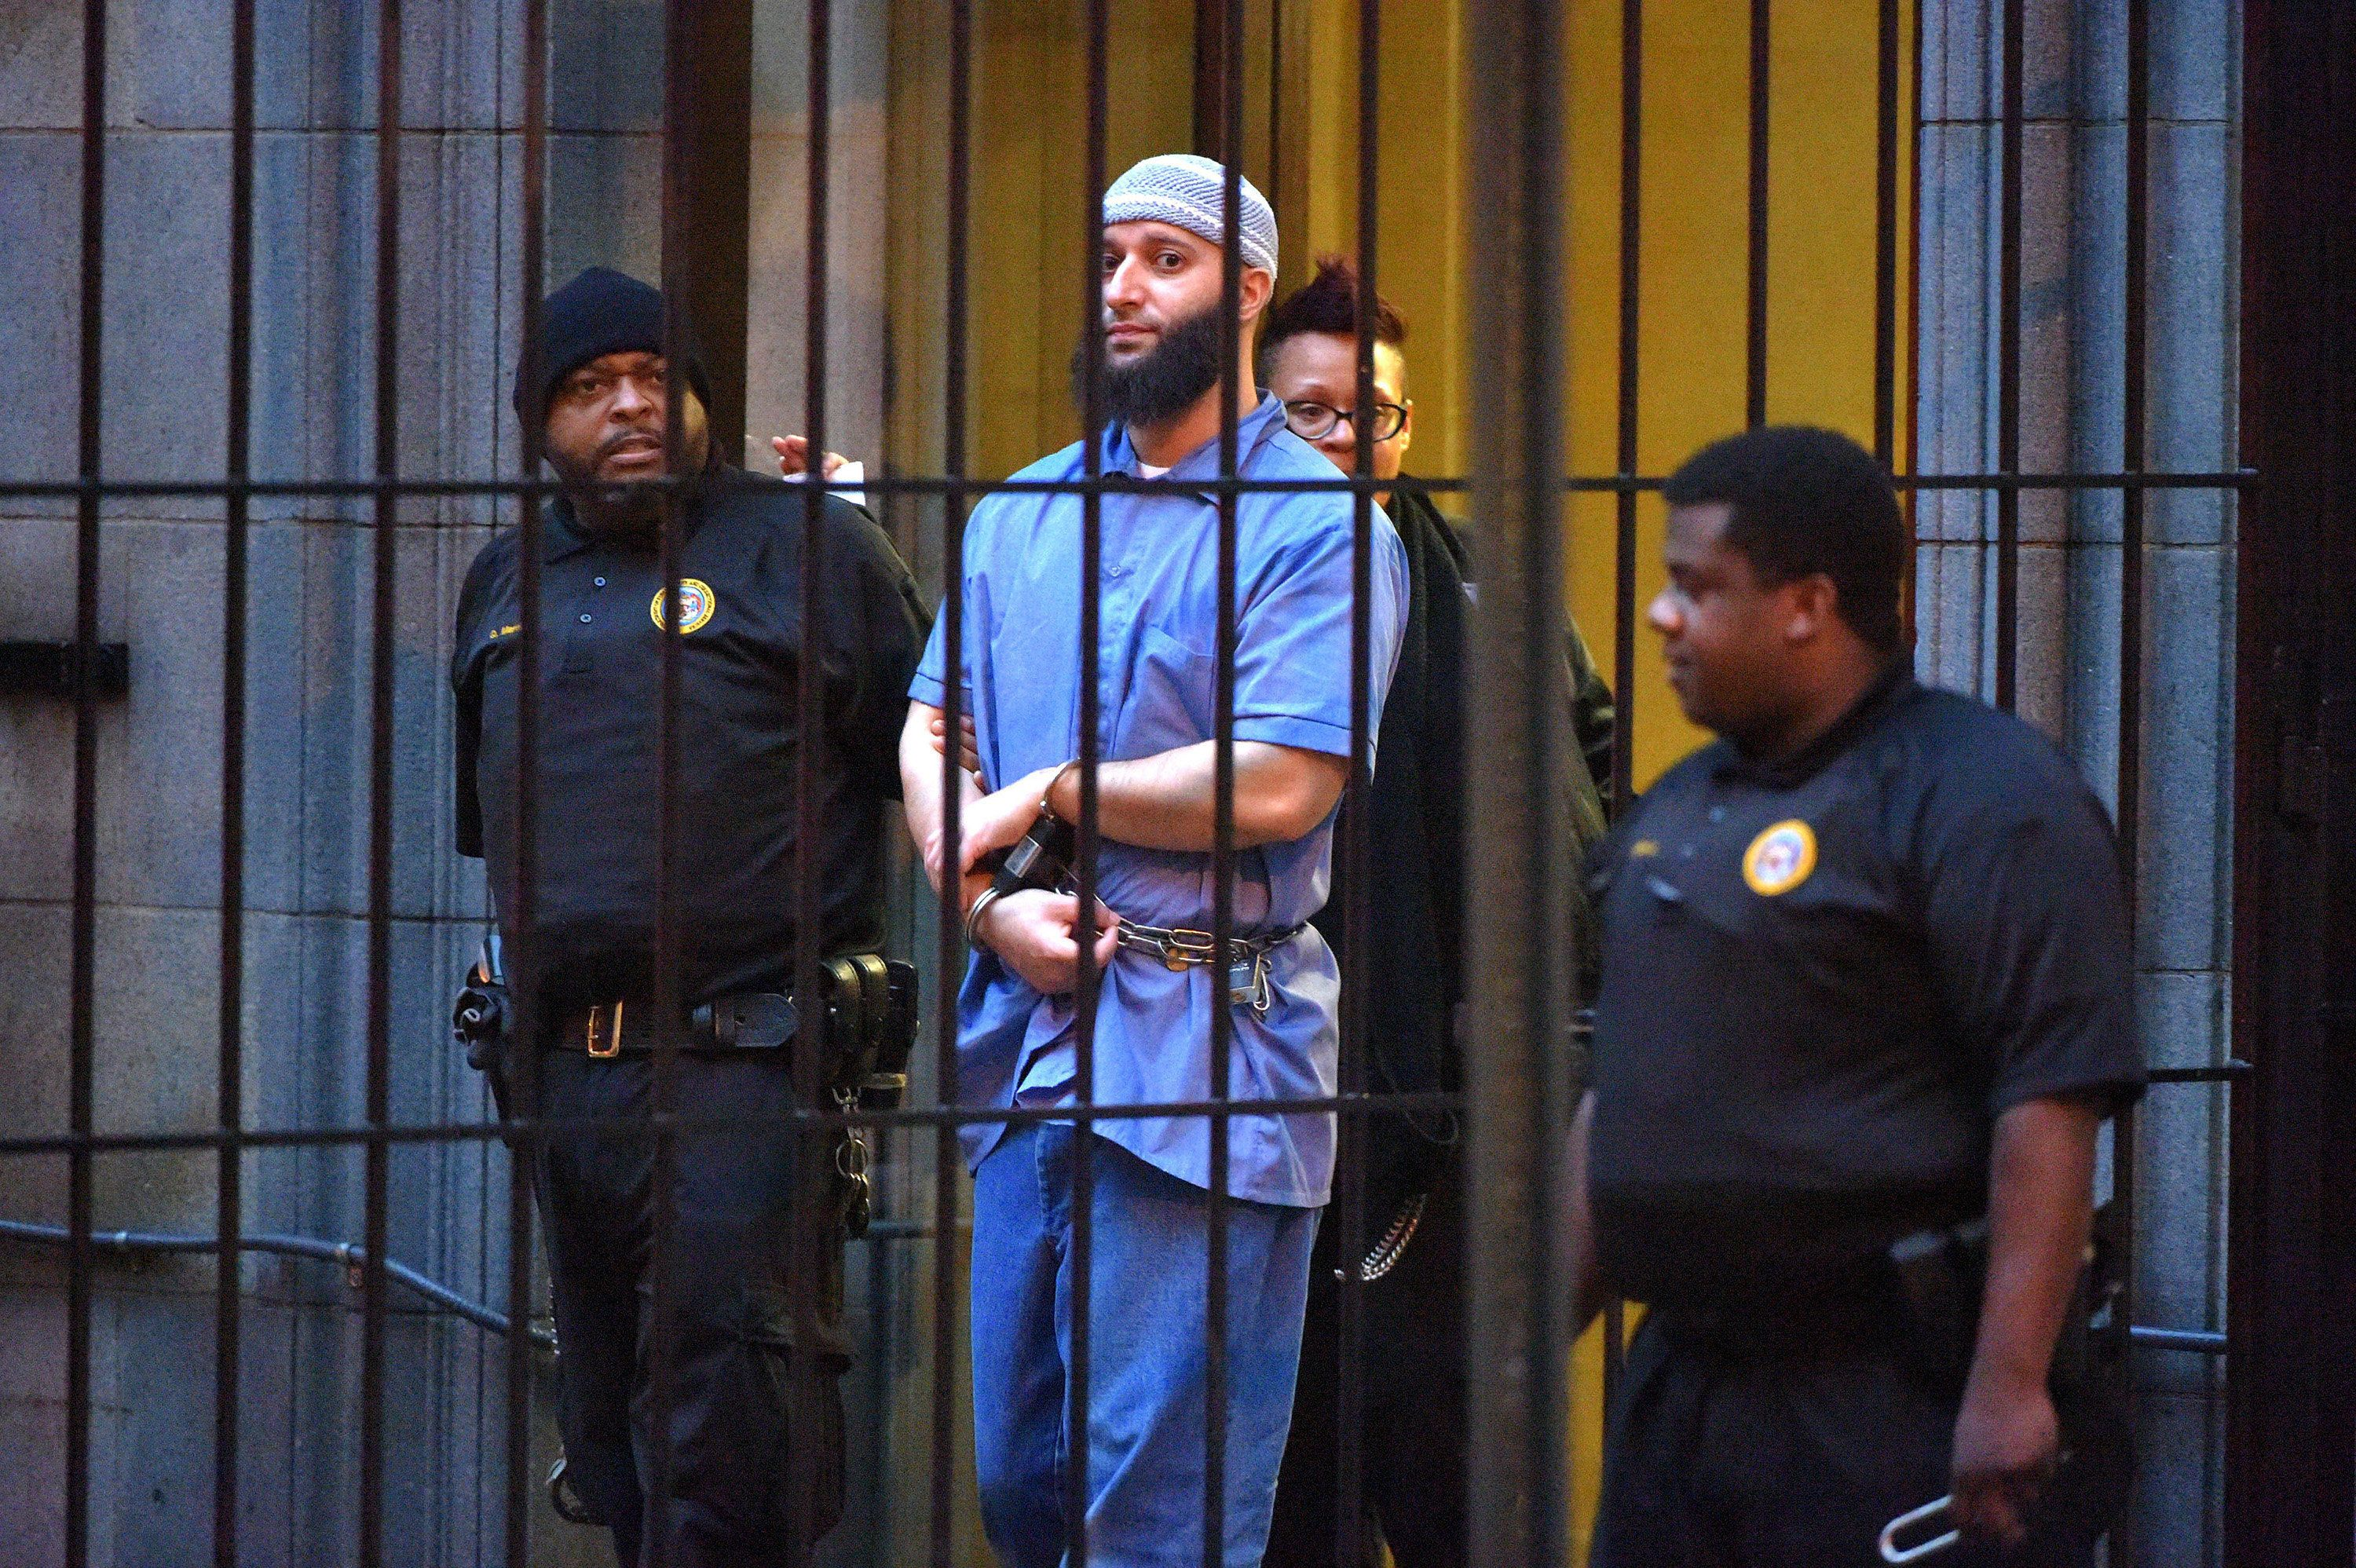 Officials escort Adnan Syed from the courthouse in February 2016. Syed's request to be released on bail...